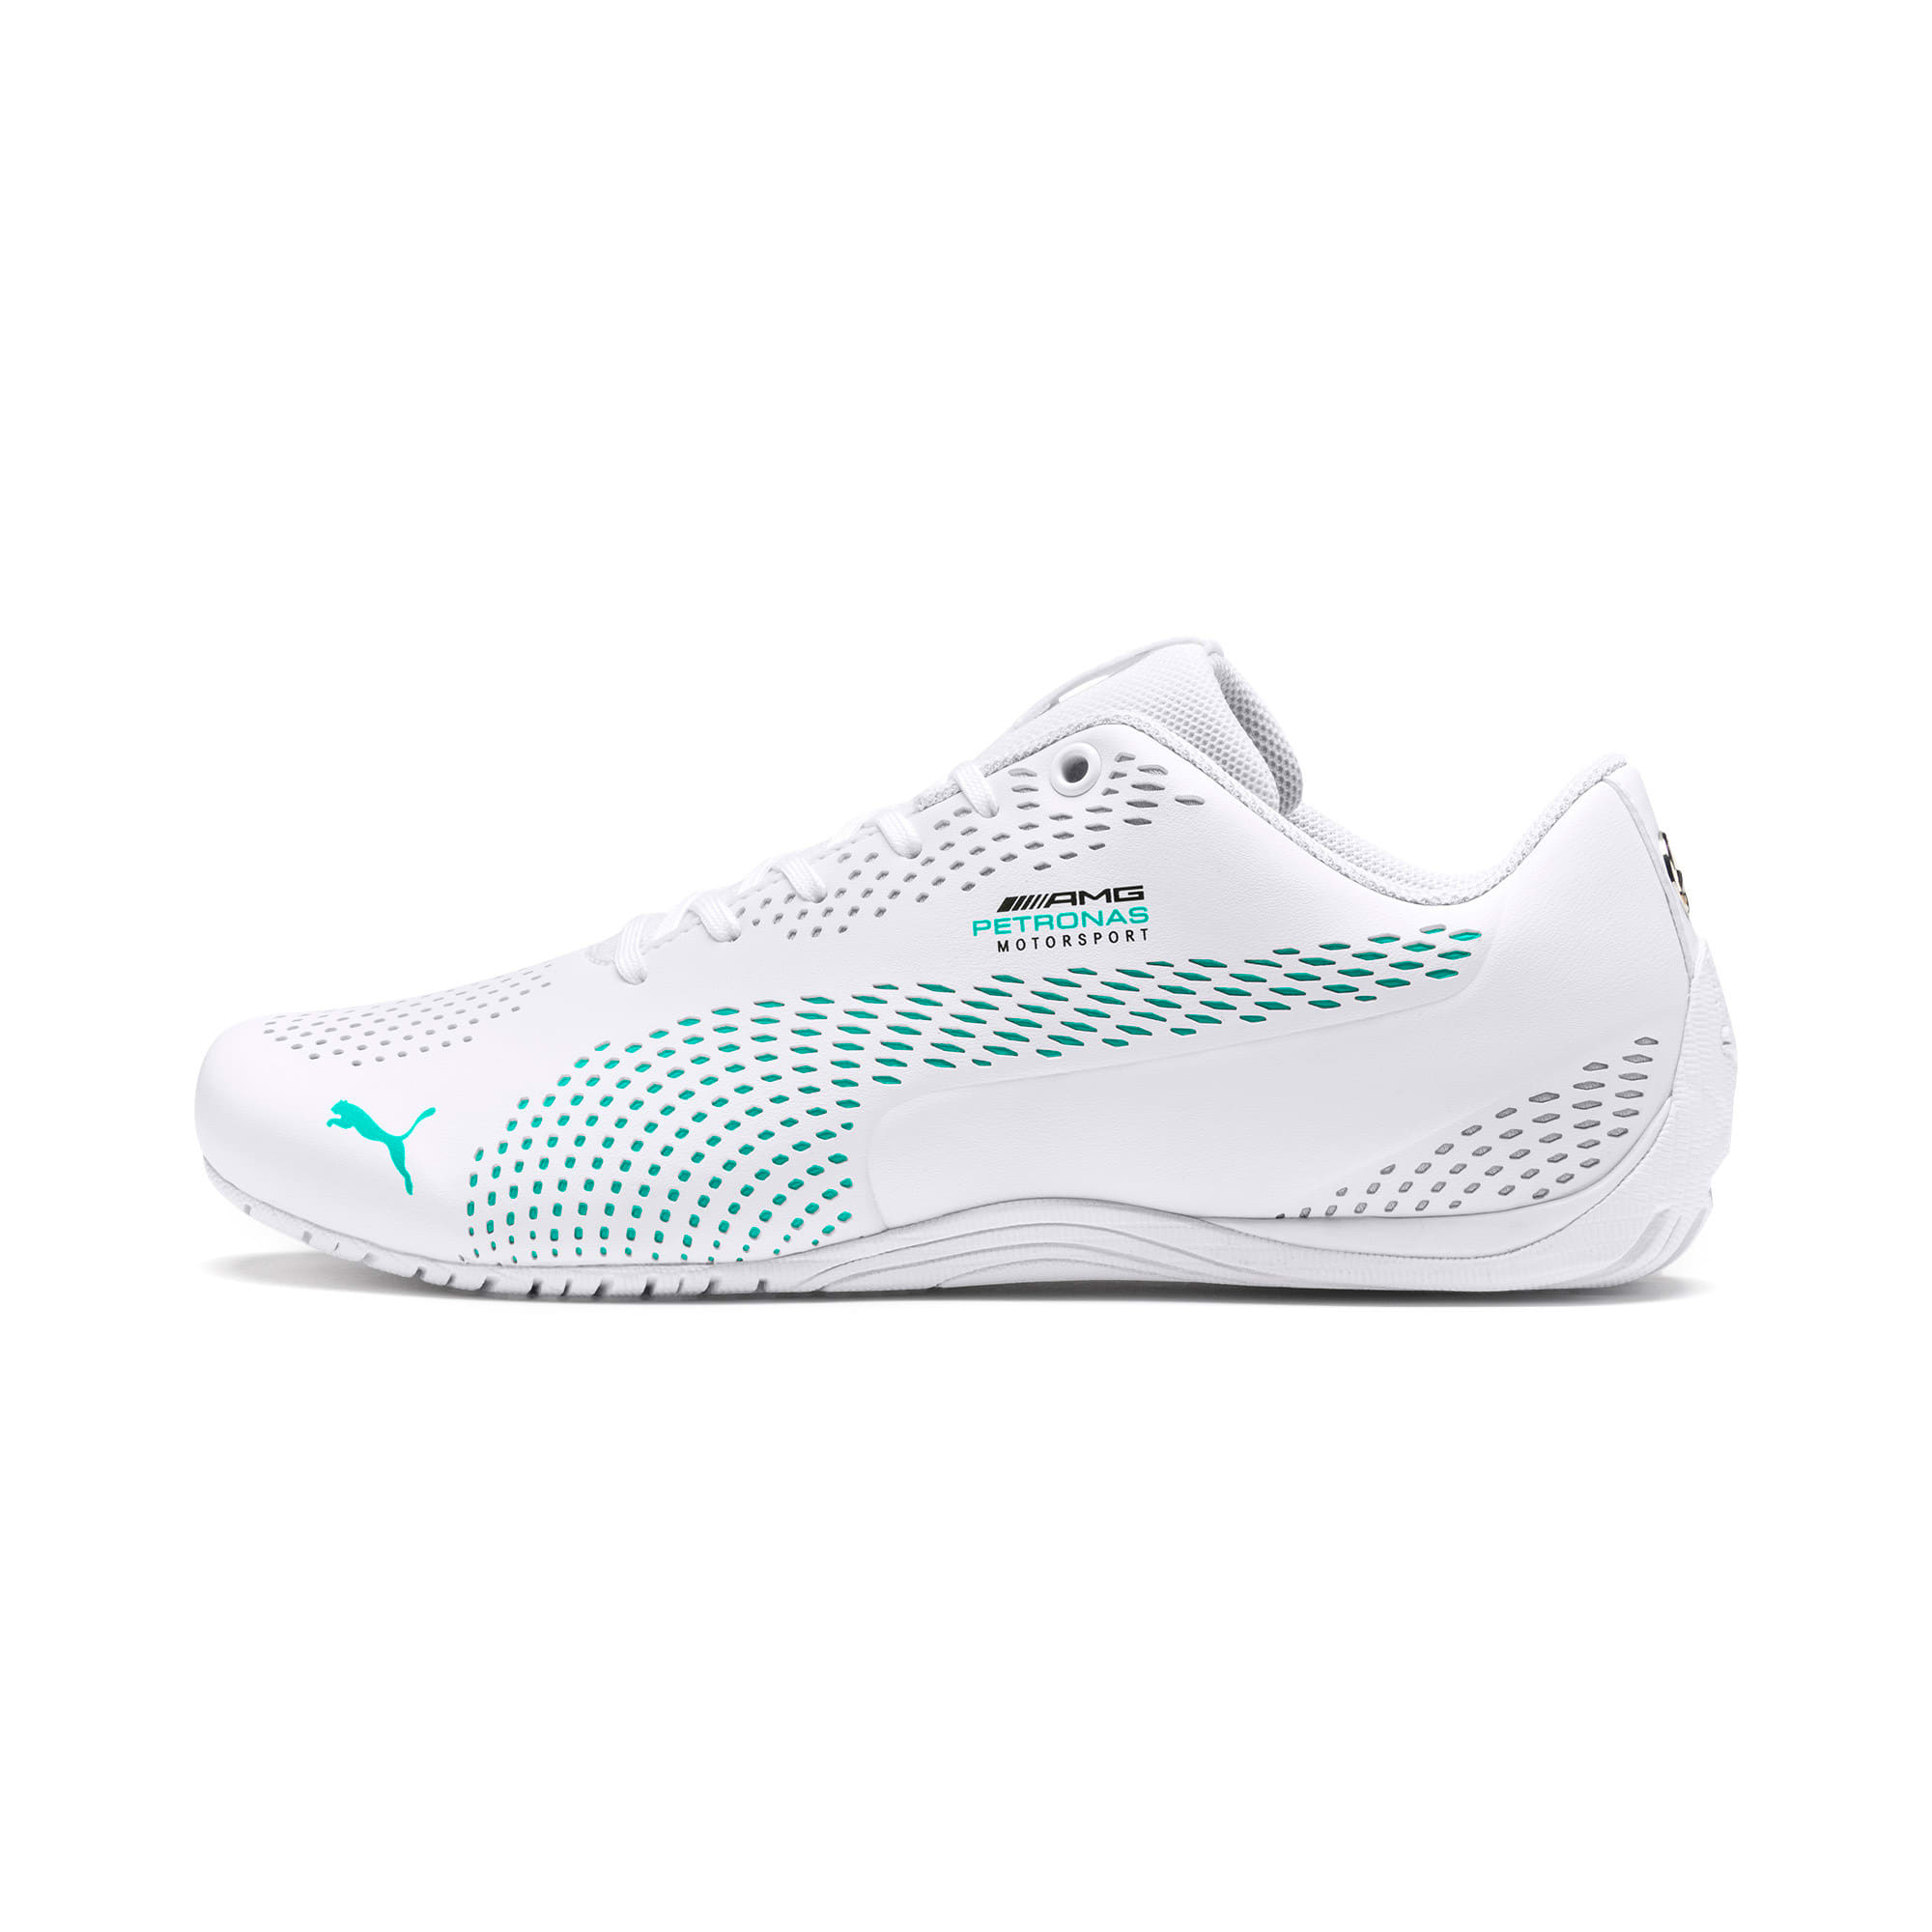 Mercedes AMG Petronas Drift Cat 5 Ultra II Shoes, Puma White-Spectra Green, large